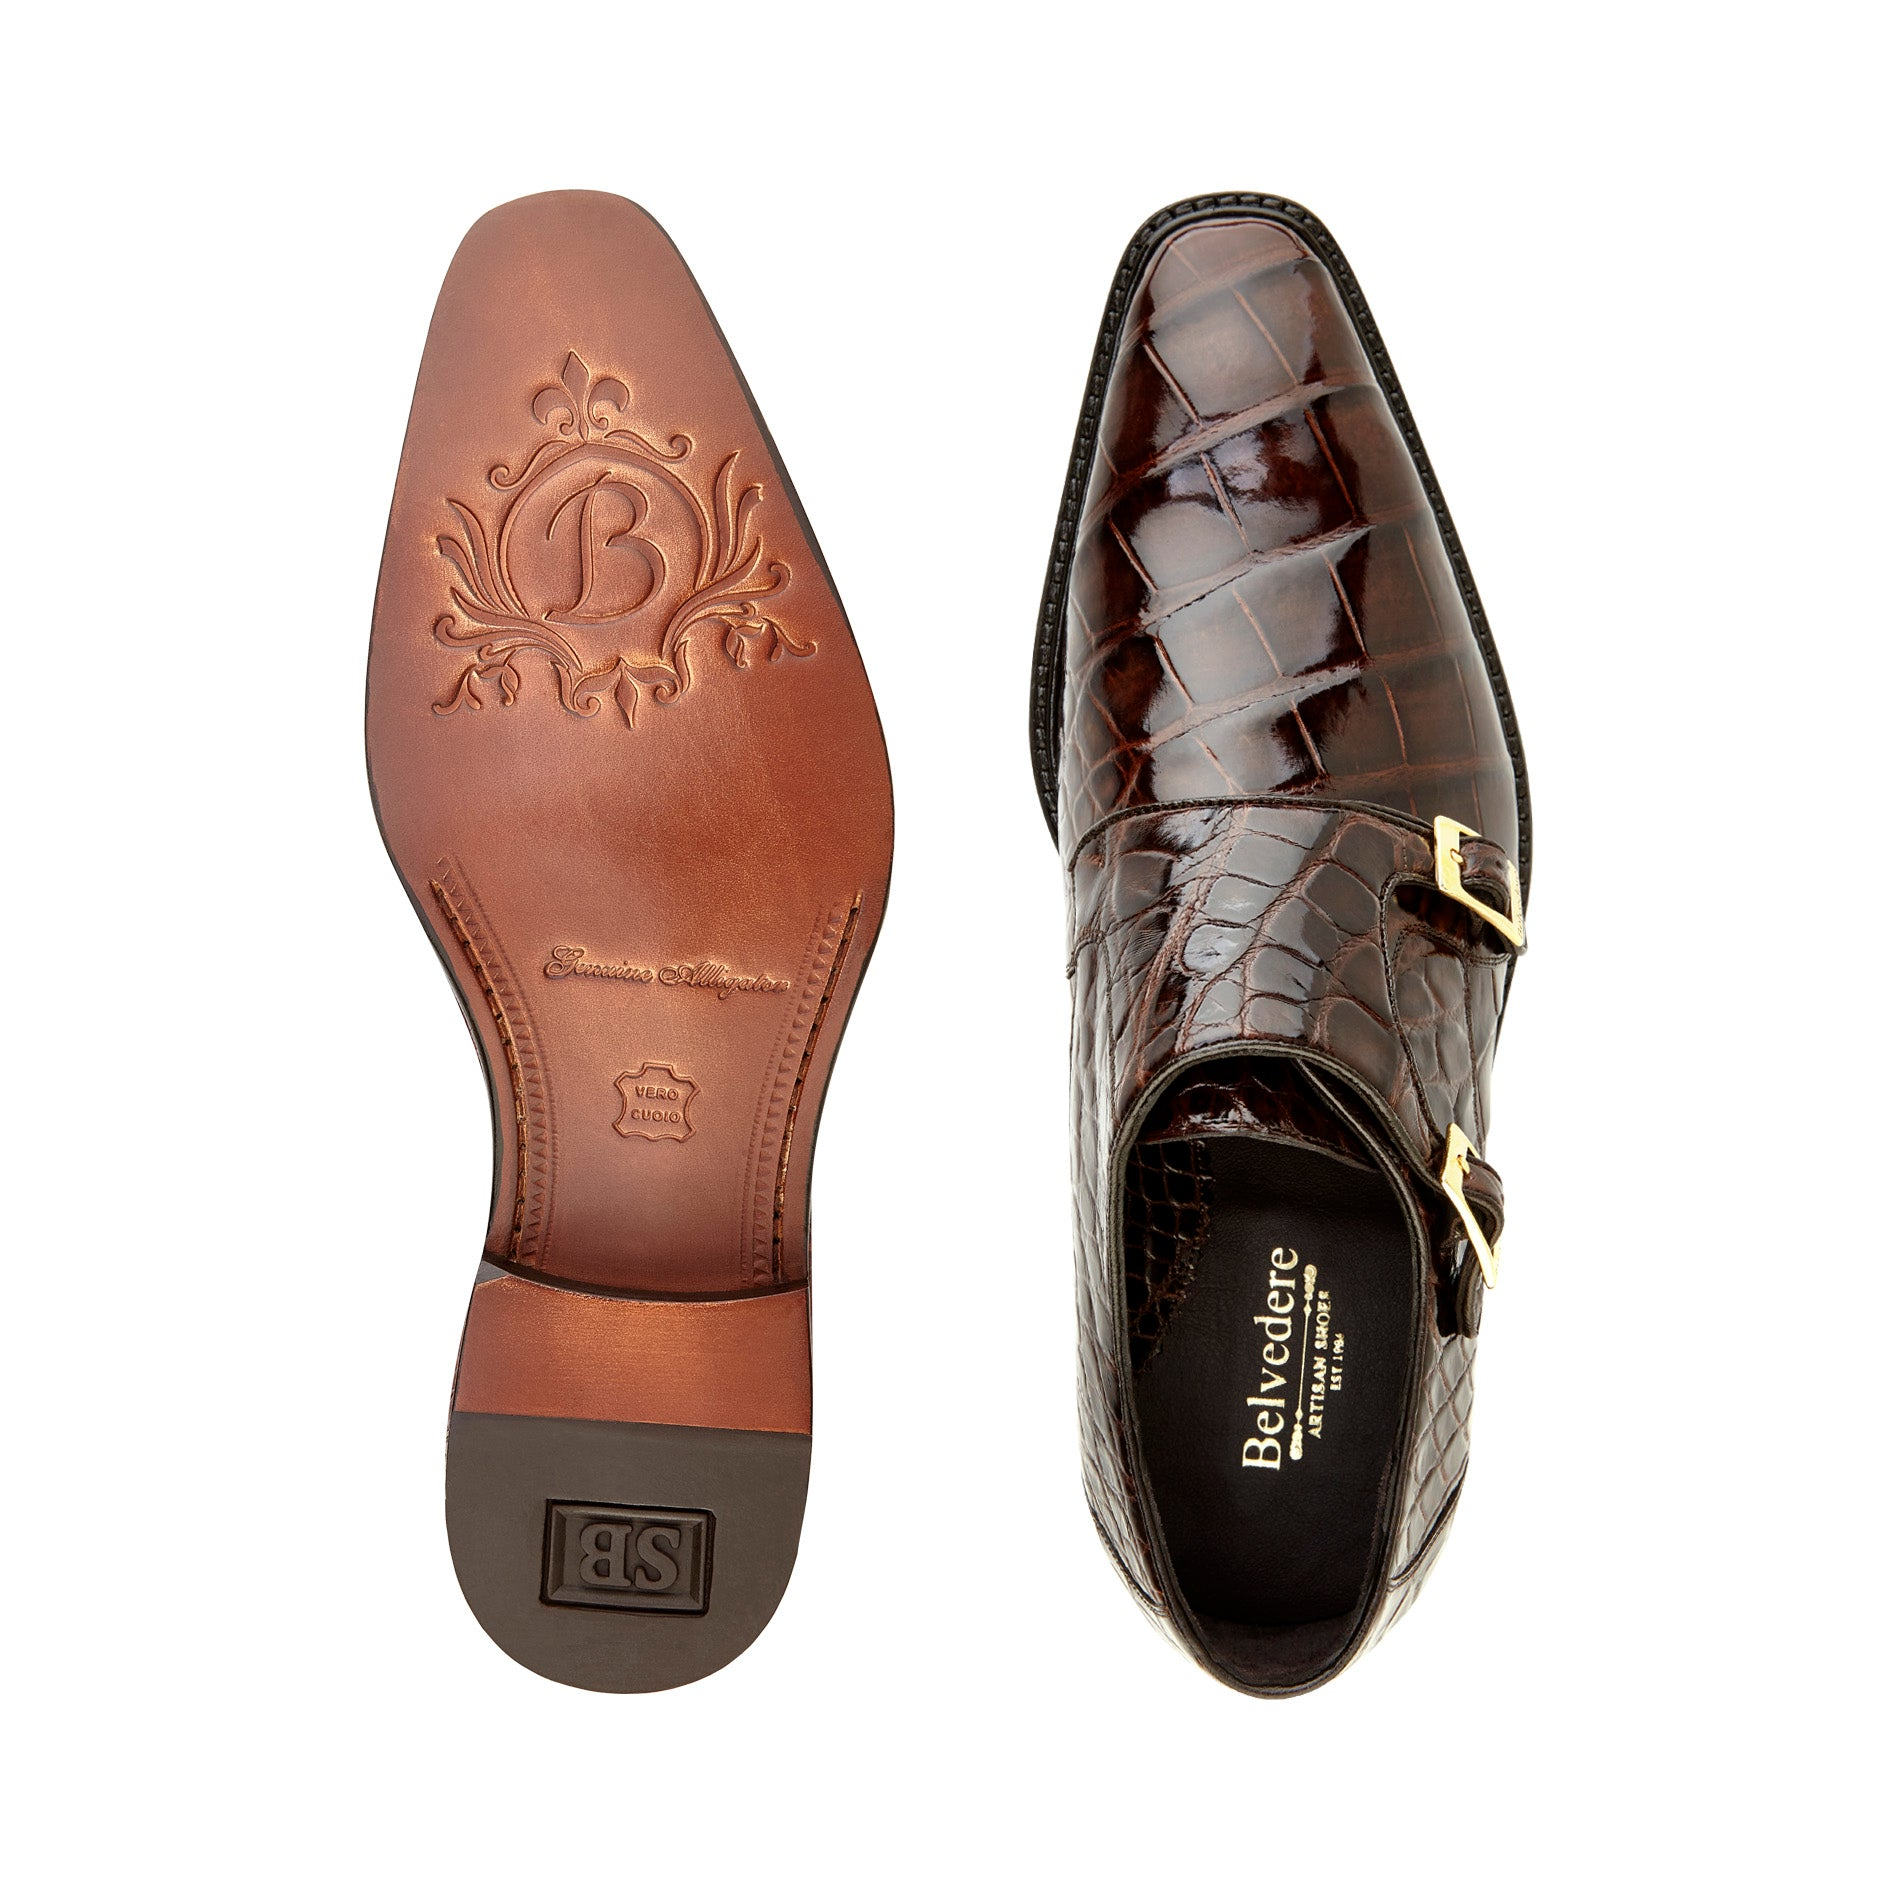 Oscar, in Chocolate Double Monk Strap Alligator Shoes Style: B02